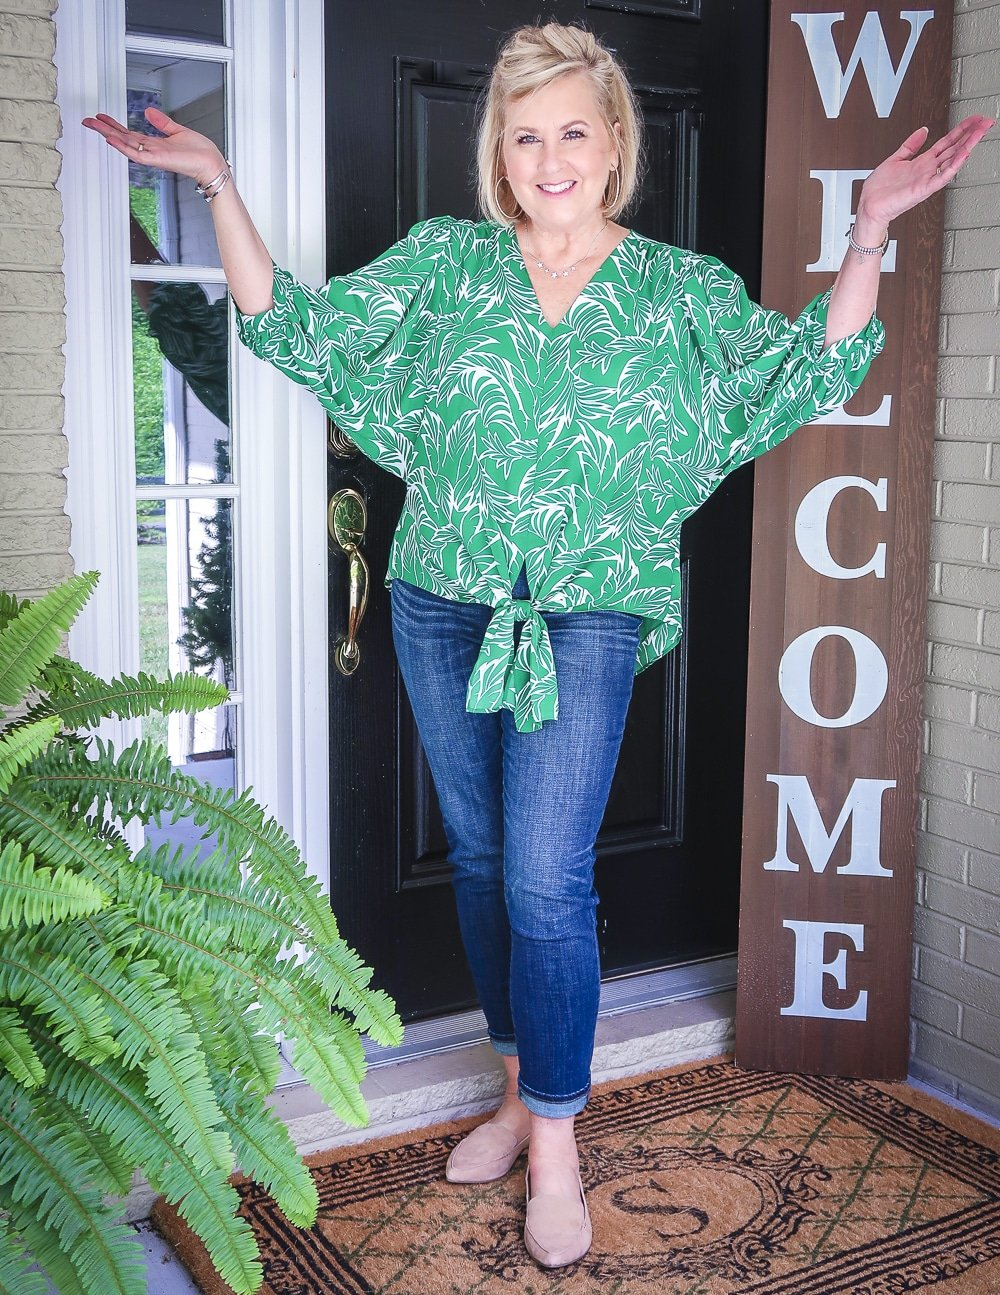 Fashion Blogger 50 Is Not Old is holding up her hands while wearing a green palm print blouse and dark indigo girlfriend jeans with camel loafers